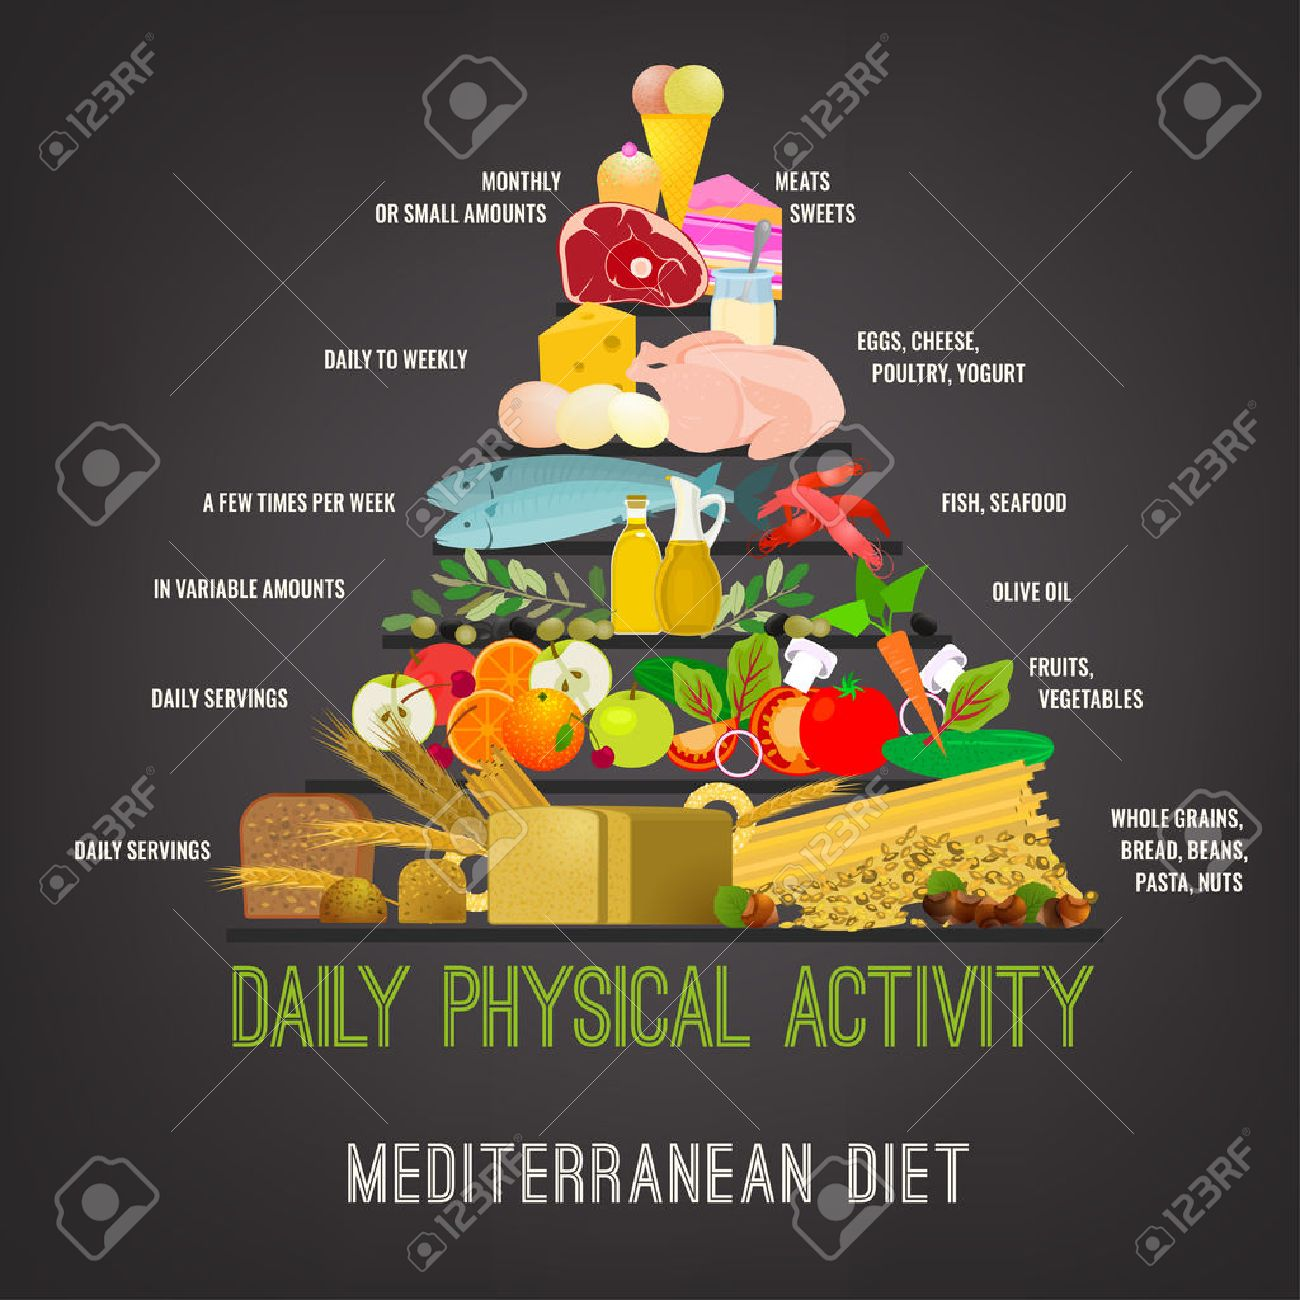 Beautiful Vector Mediterranean Diet Image In A Modern Authentic